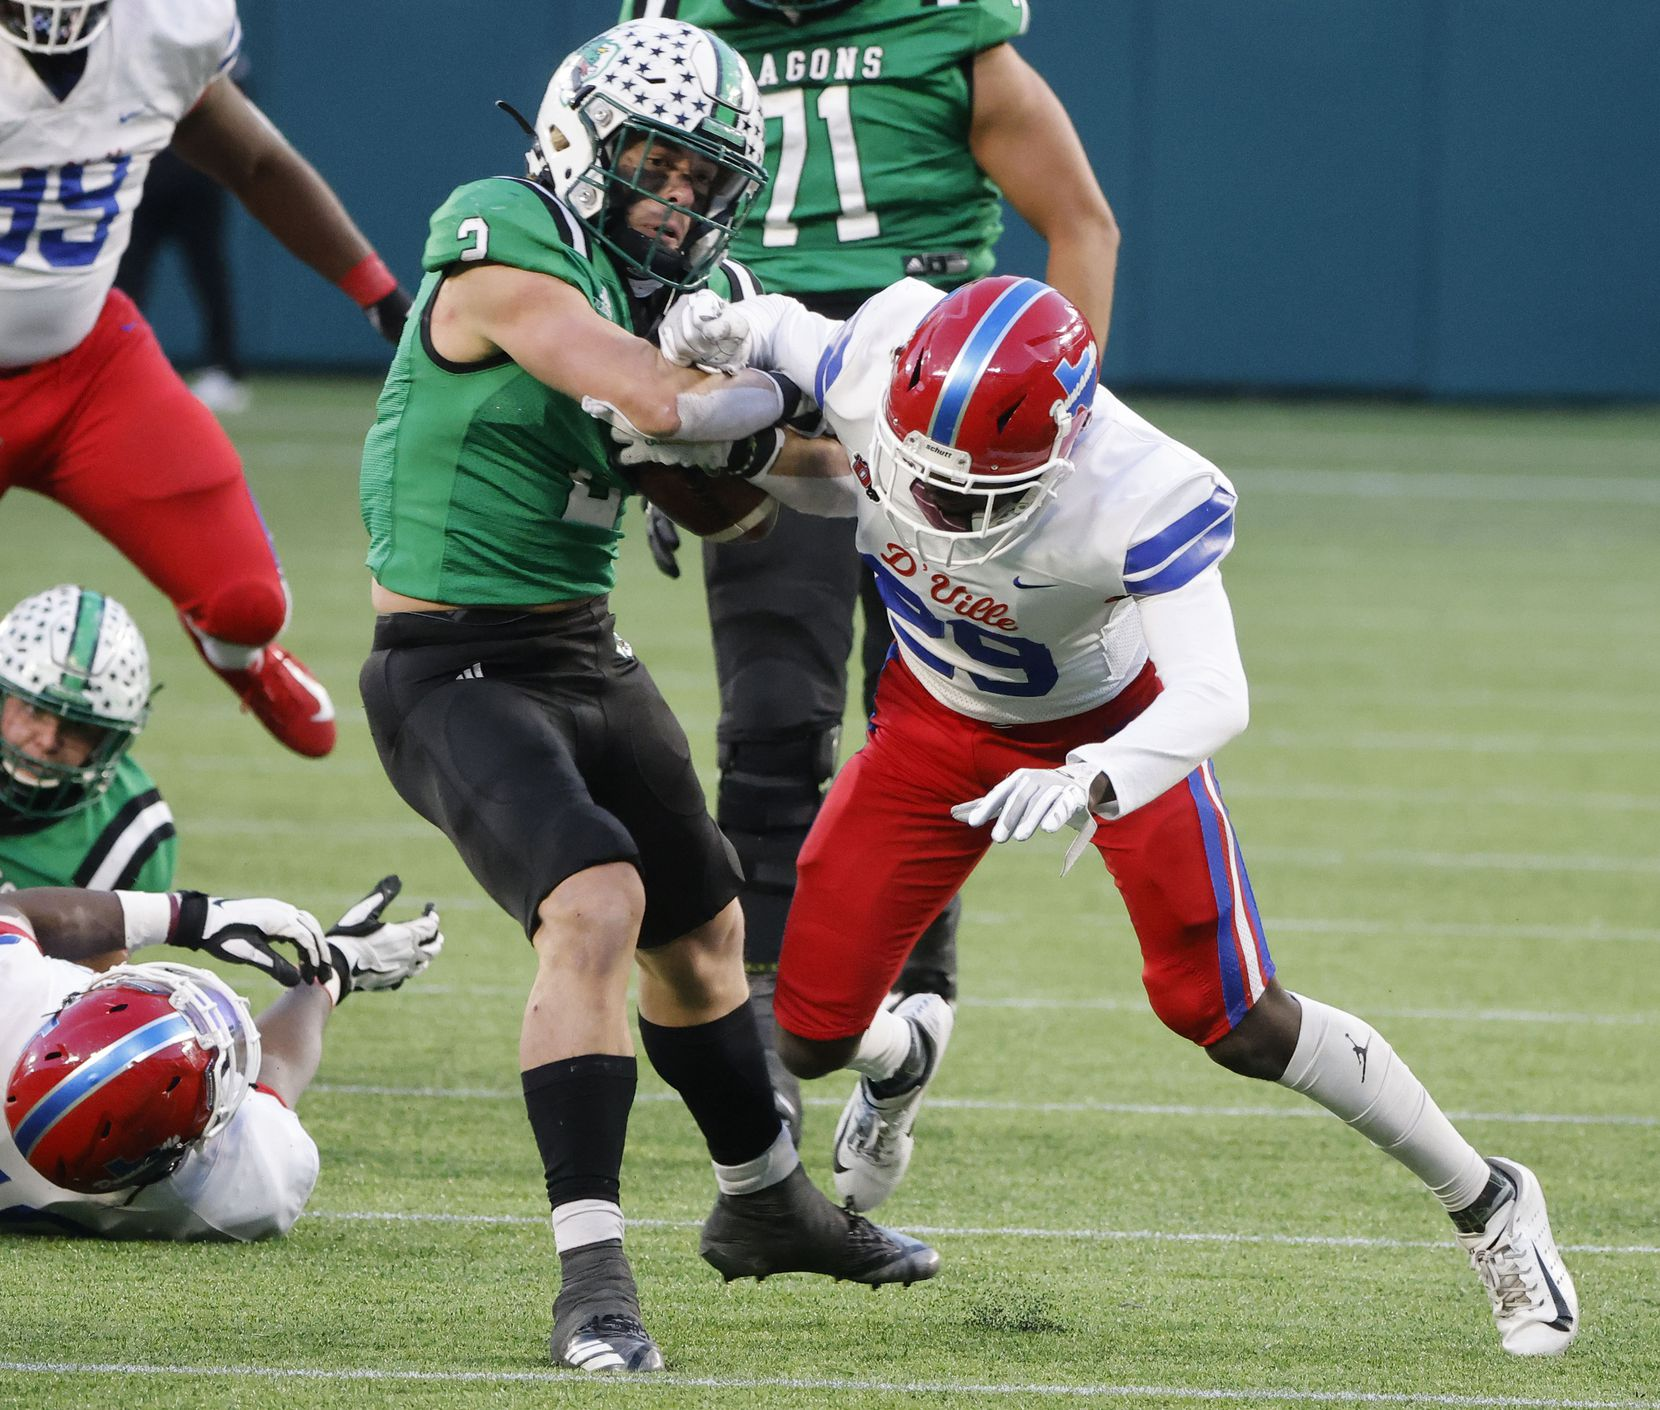 Southlake running back Owen Allen bounces off an attempted tackle by Duncanville defender Willie Angton Jr. (29) to score a touchdown during the Class 6A Division I state high school football semifinal in Arlington, Texas on Jan. 9, 2020. (Michael Ainsworth)